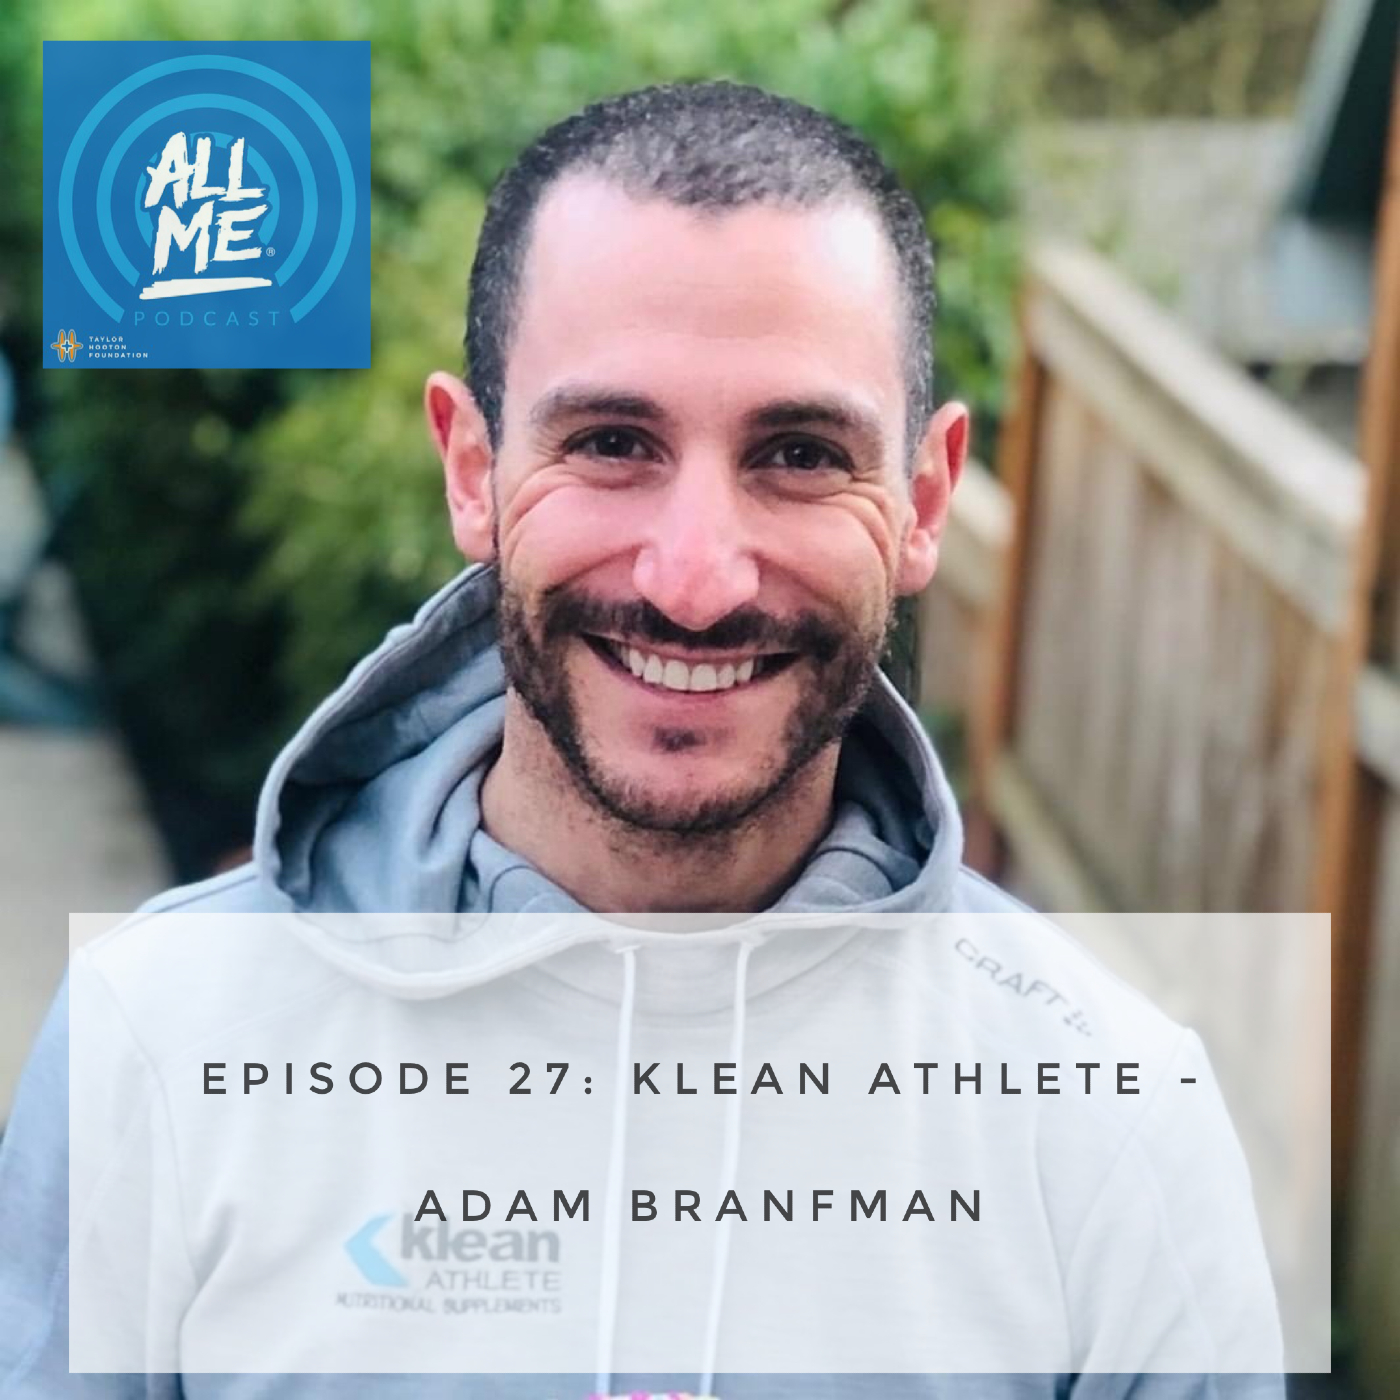 Episode 27: Klean Athlete® - Adam Branfman